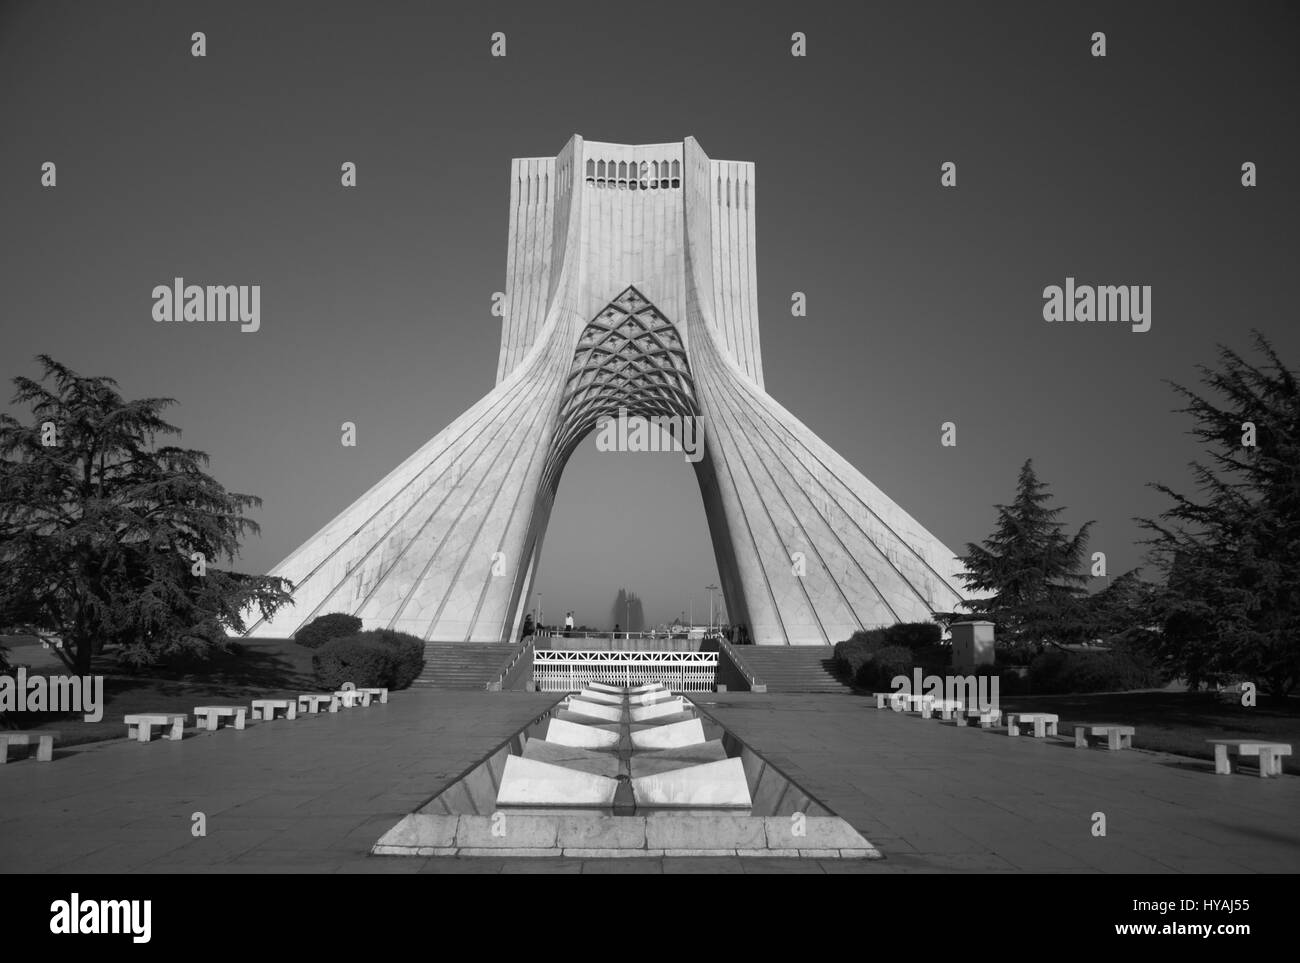 Monochrome image of the Azadi Tower, formerly Shahyad Tower, Azadi Square, Tehran, Islamic Republic of Iran - Stock Image